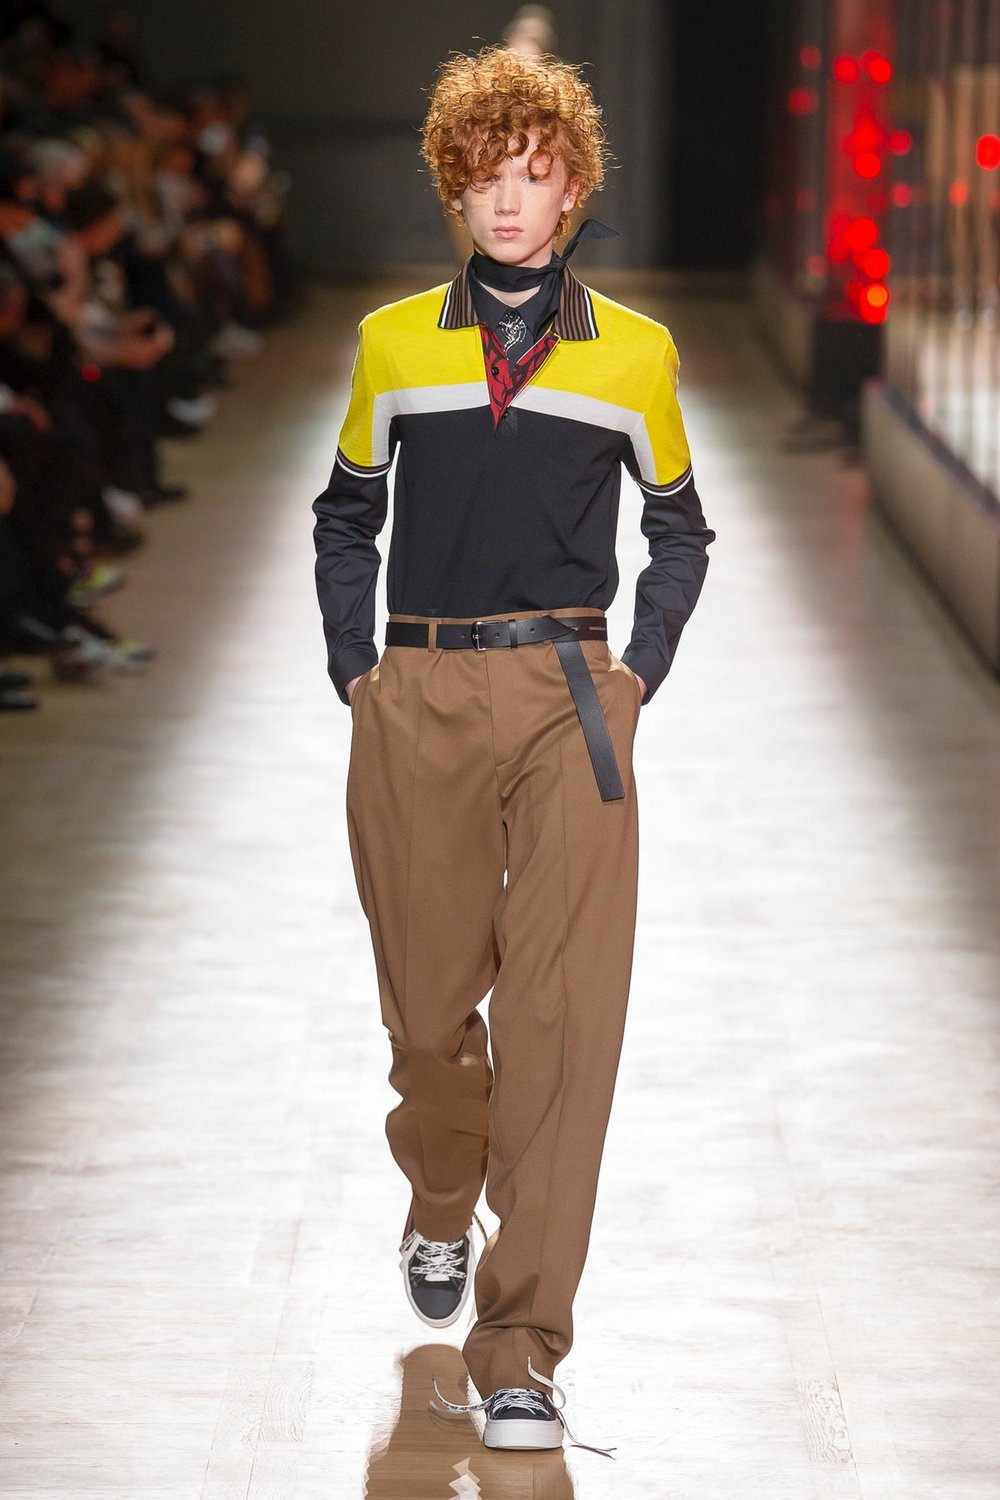 dior_homme_look_34_menswear_autumn_2018.jpeg